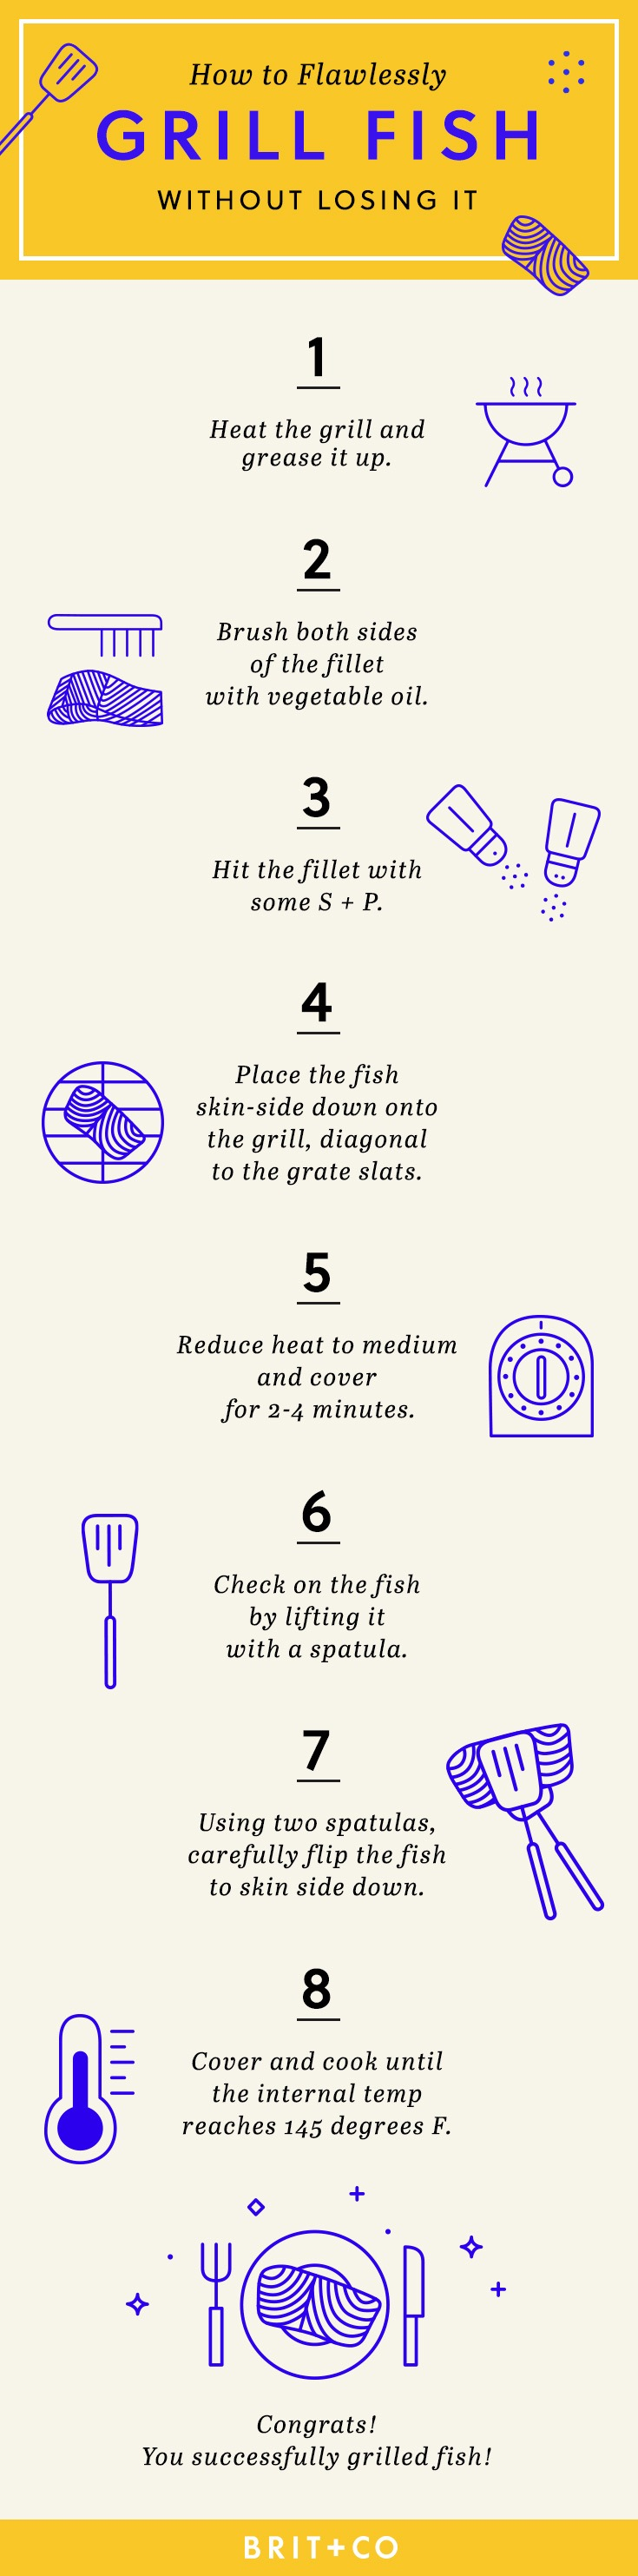 Grilling-Fish-Infographic-2